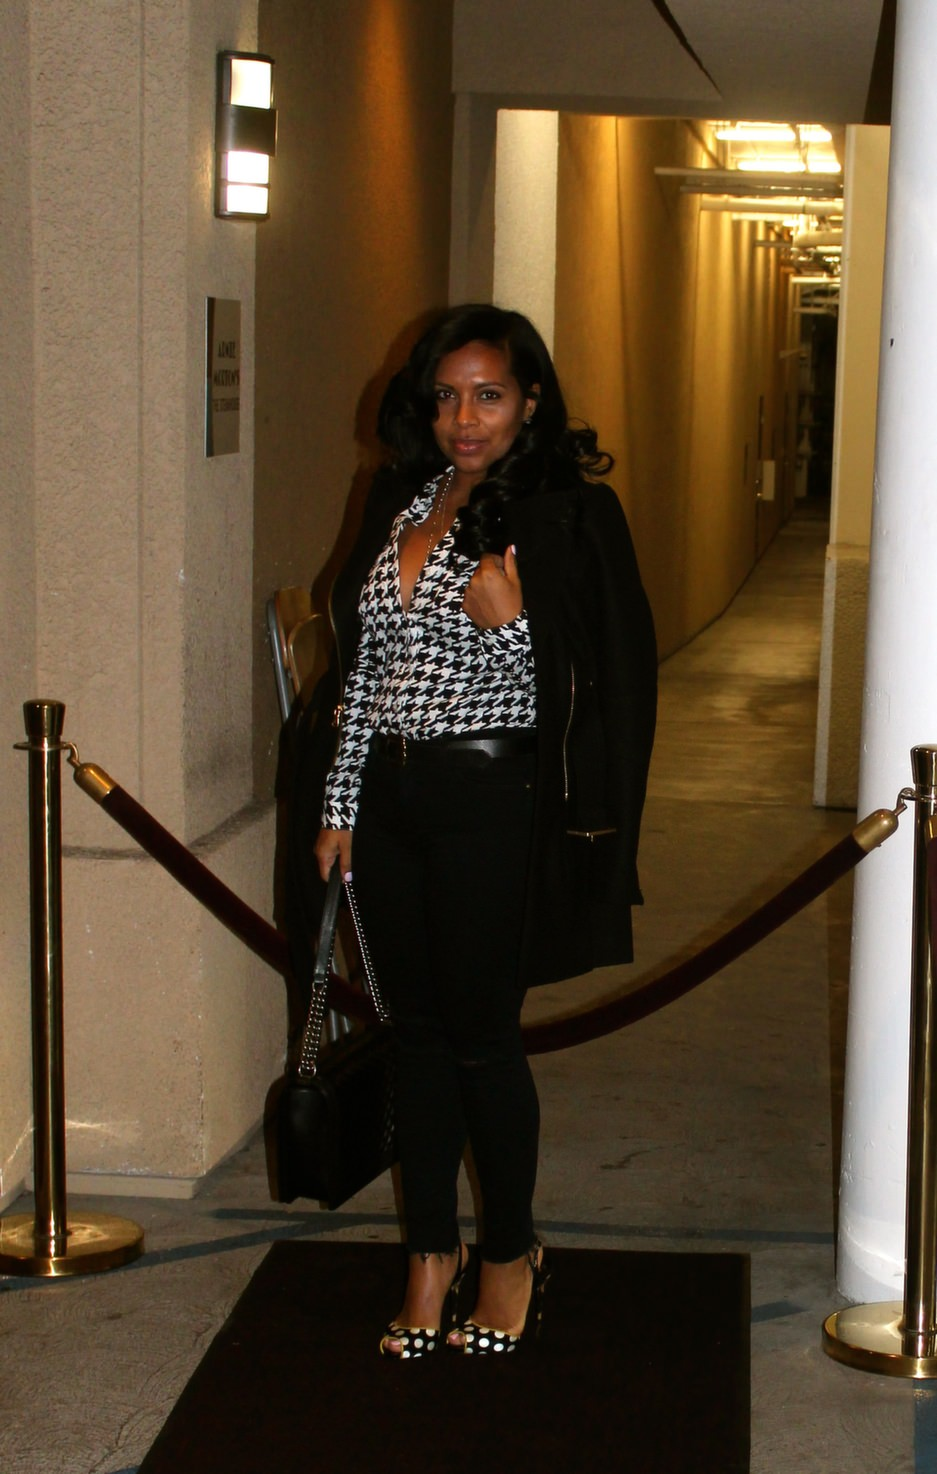 black women fashion - thankful for the little things